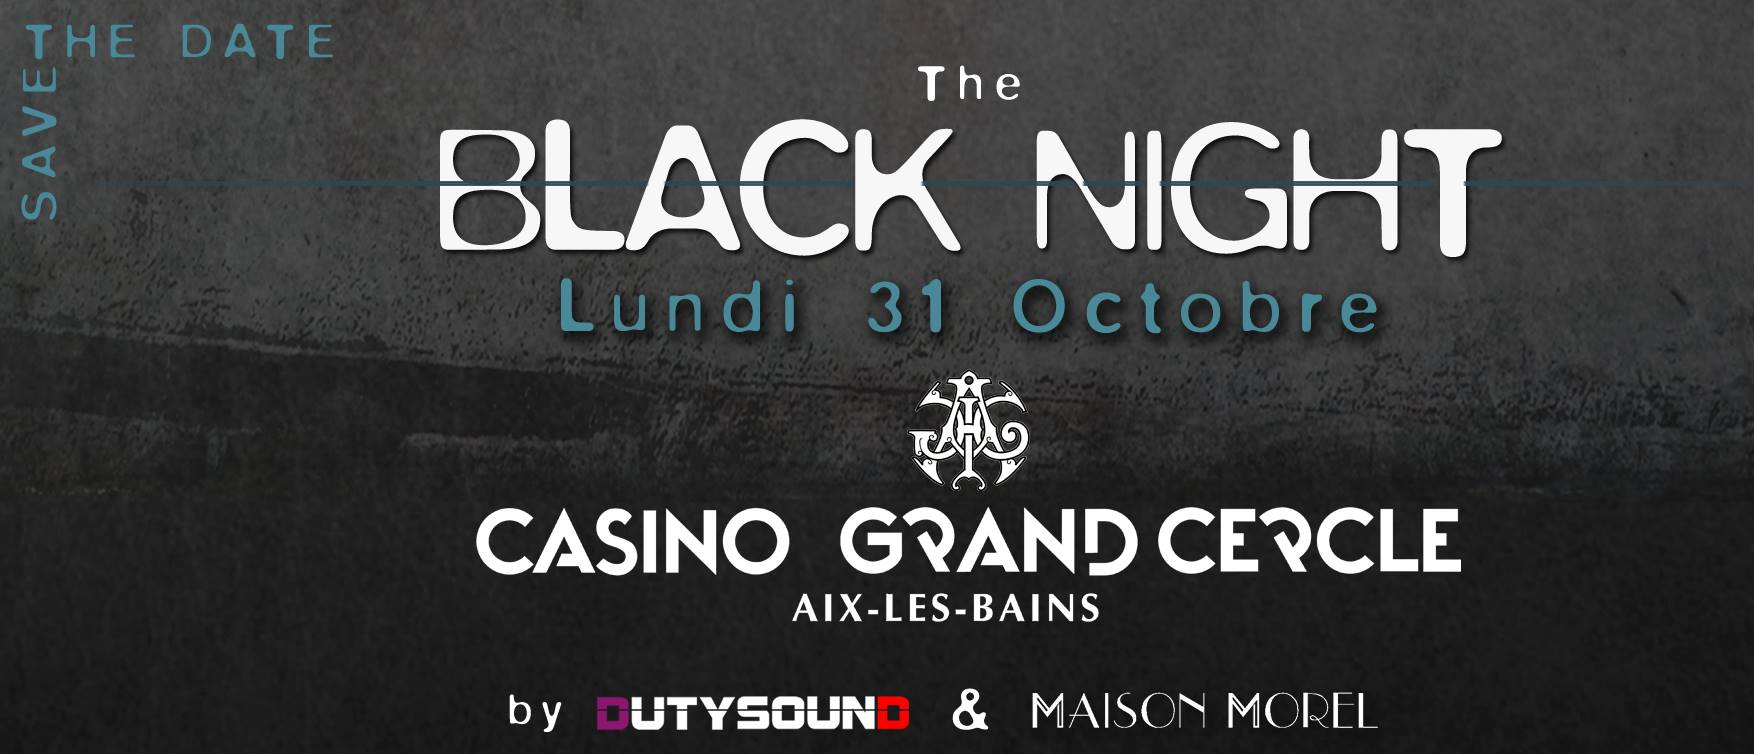 Black Night premium juanito